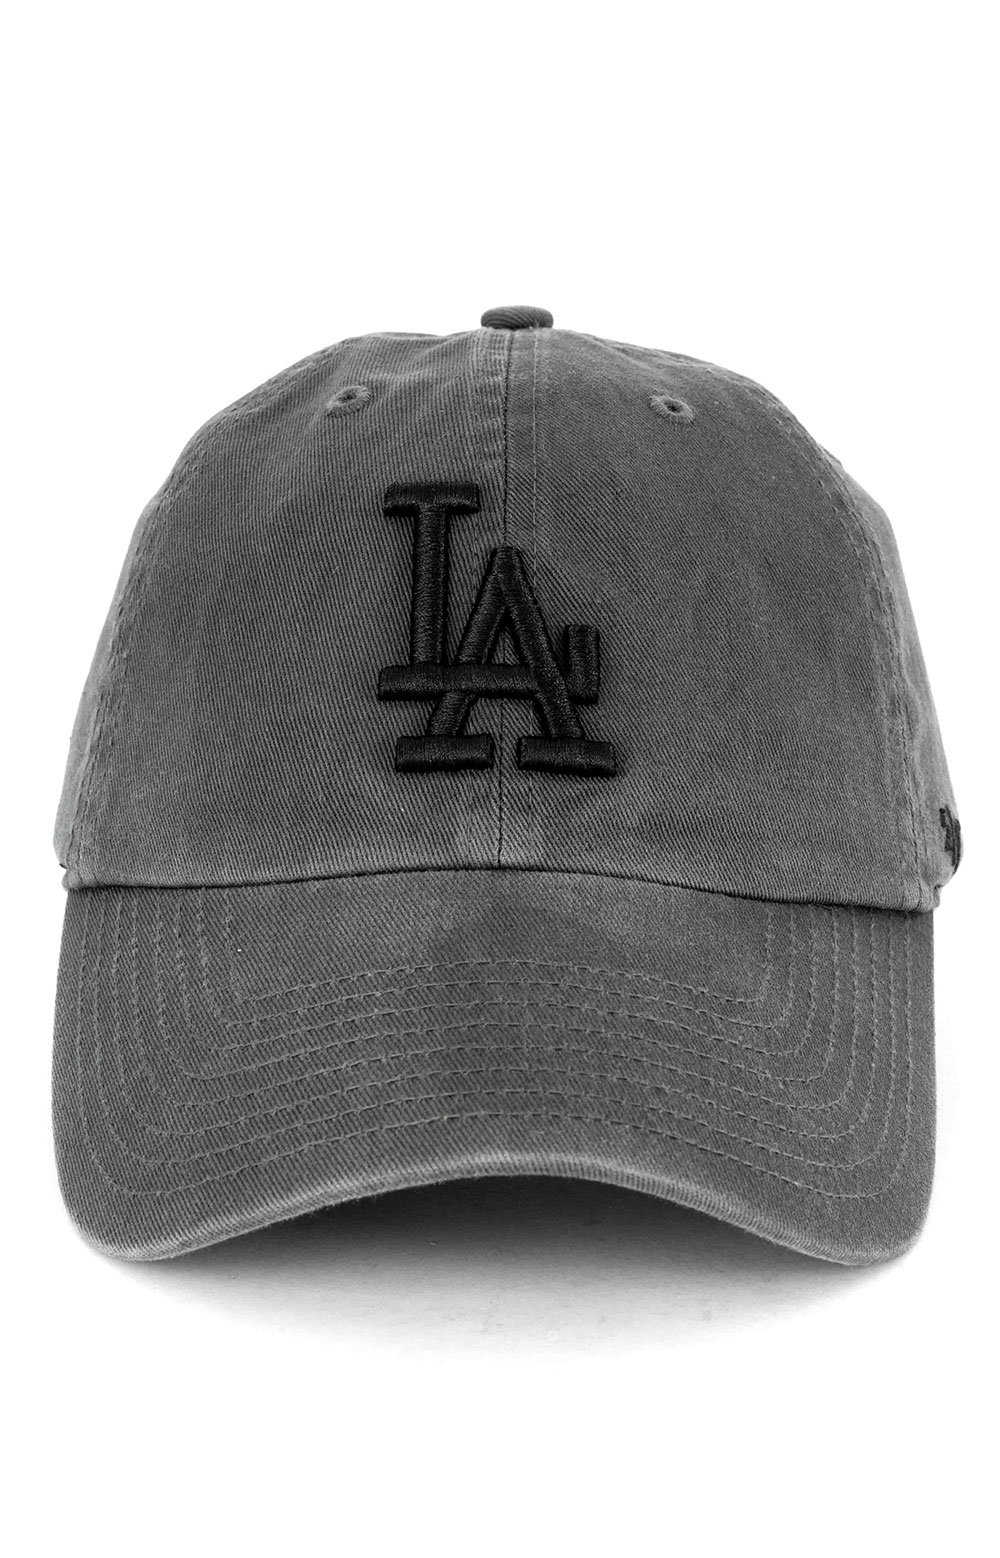 Los Angeles Dodgers Clean Up Cap - Charcoal 2